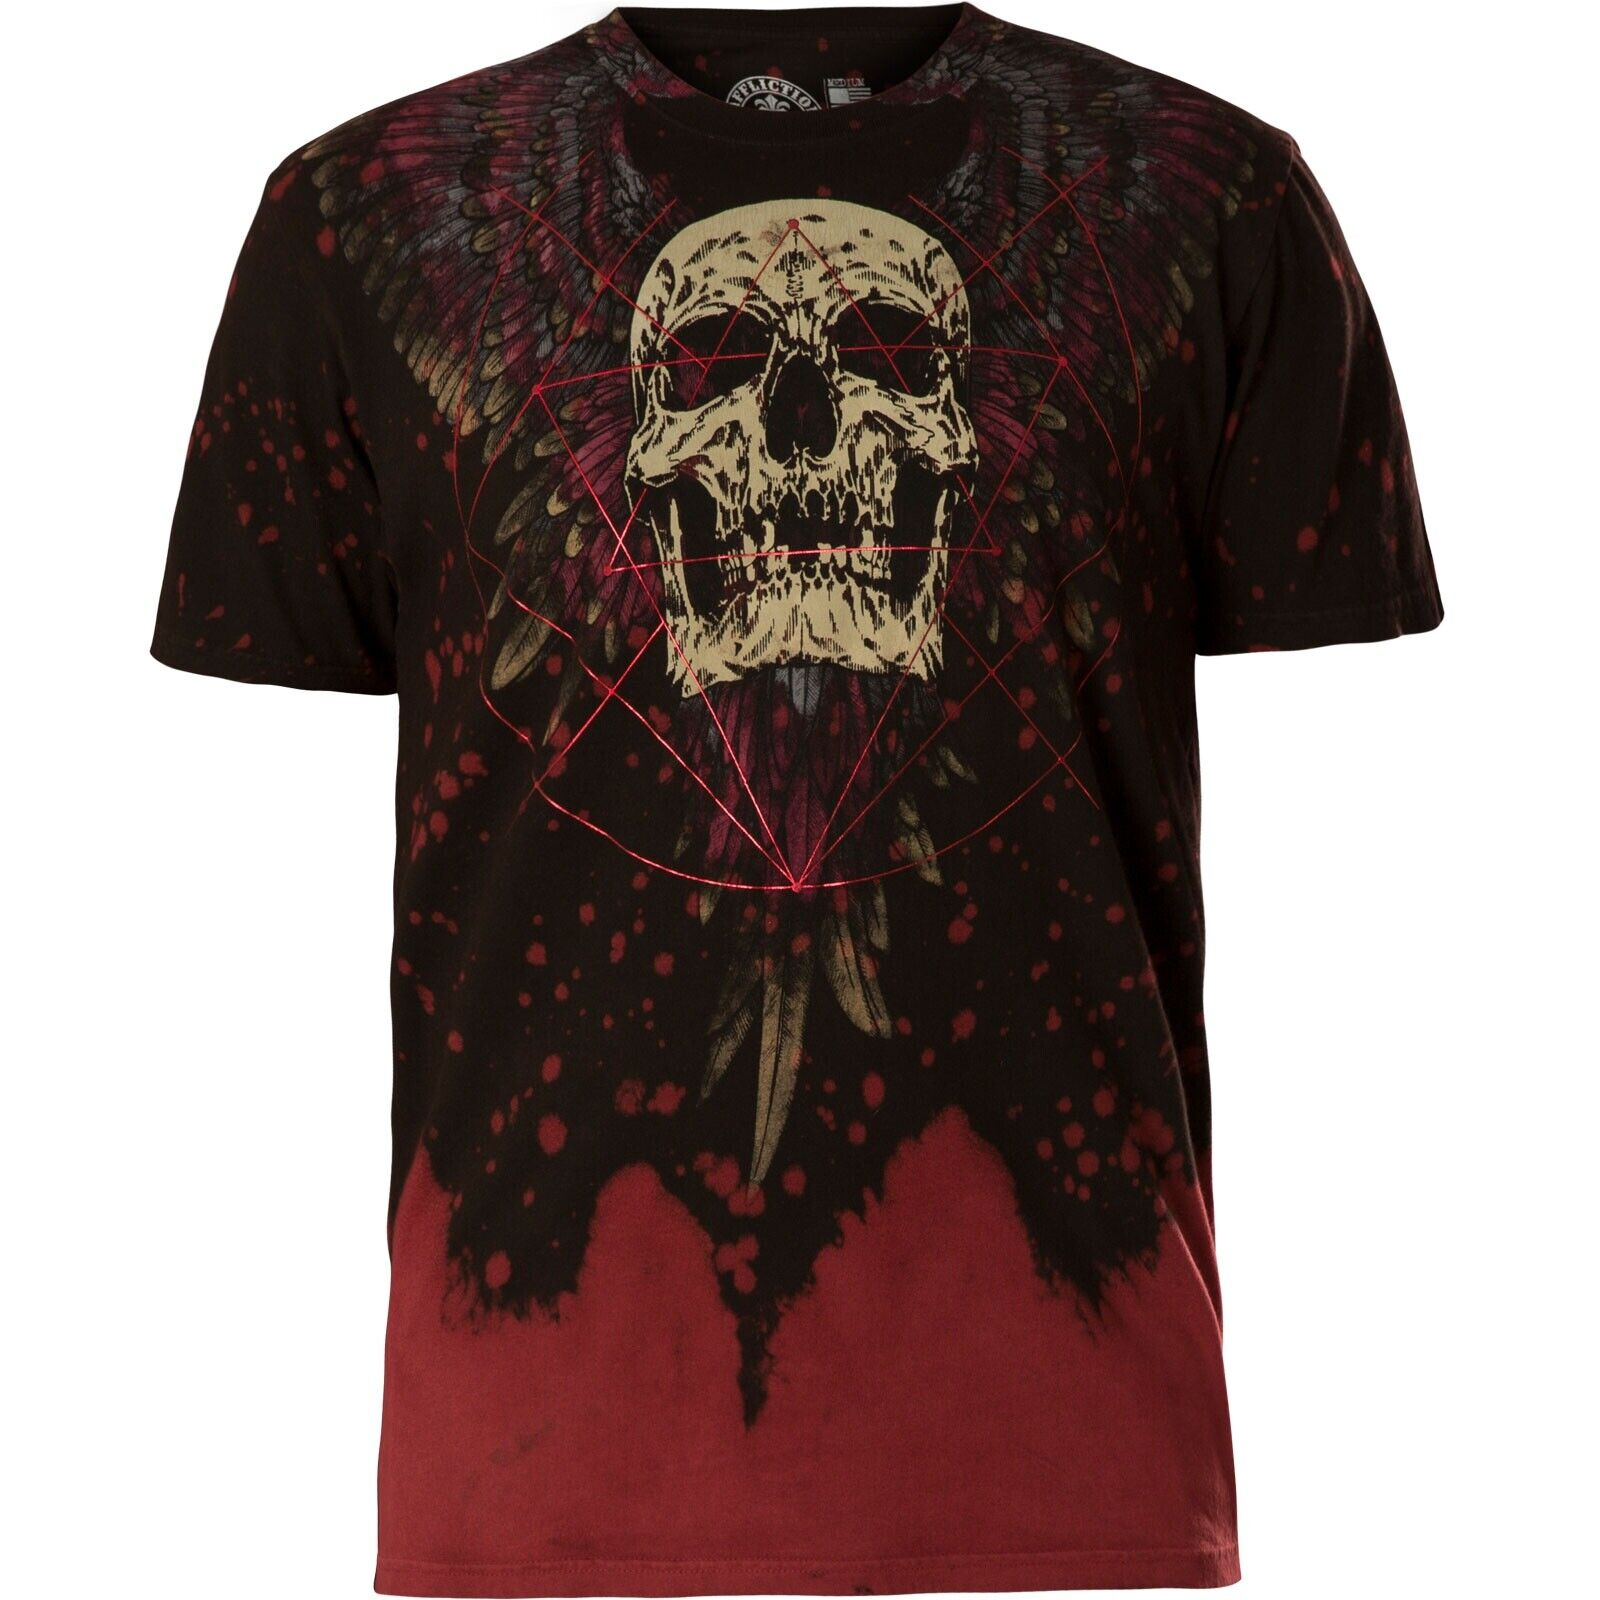 Affliction Affliction Affliction T-shirt unknowable Rosso T-shirts a633a0